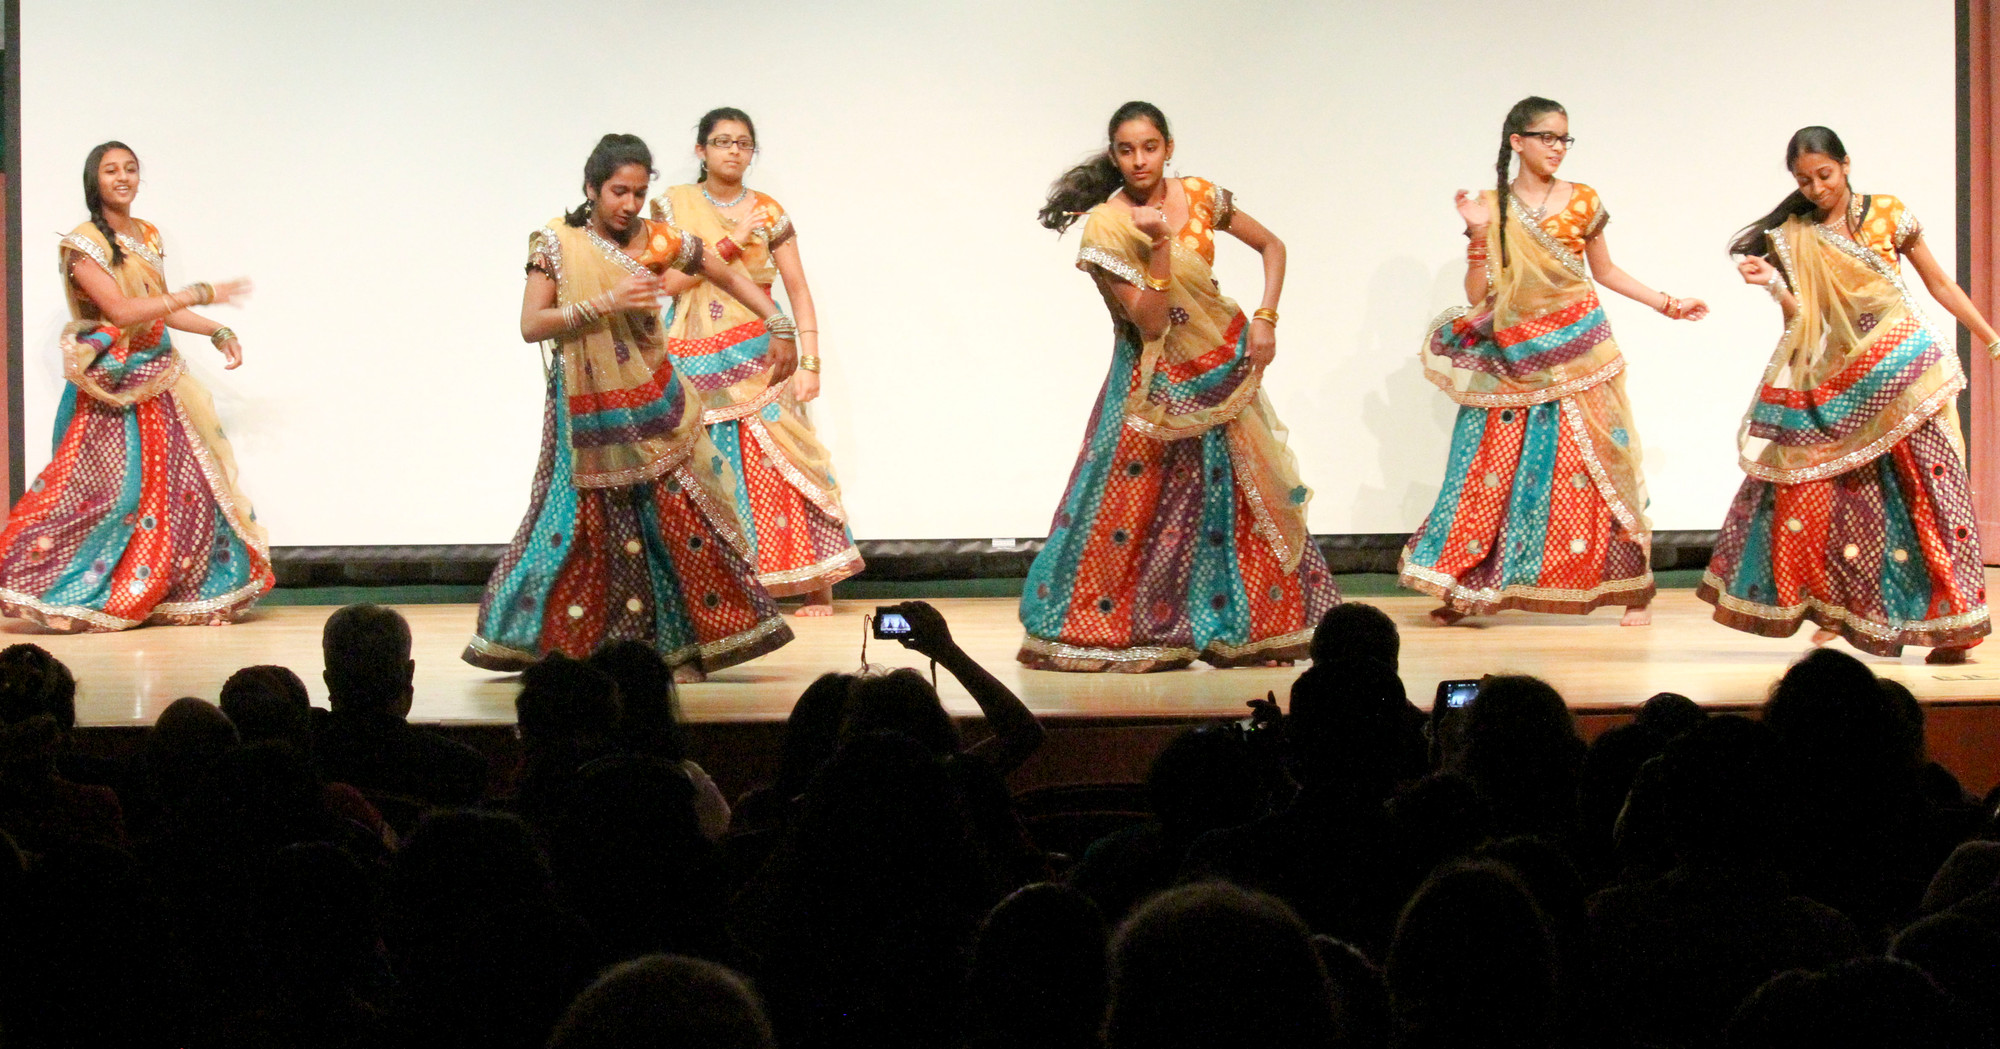 Kangna Medley, a traditional Indian dance, was performed at the children's day celebration. From left were Haley Patel, Shree Patel, Pooja Shah, Shainee Islam, Bharvi Chayre and Shivali Sinha